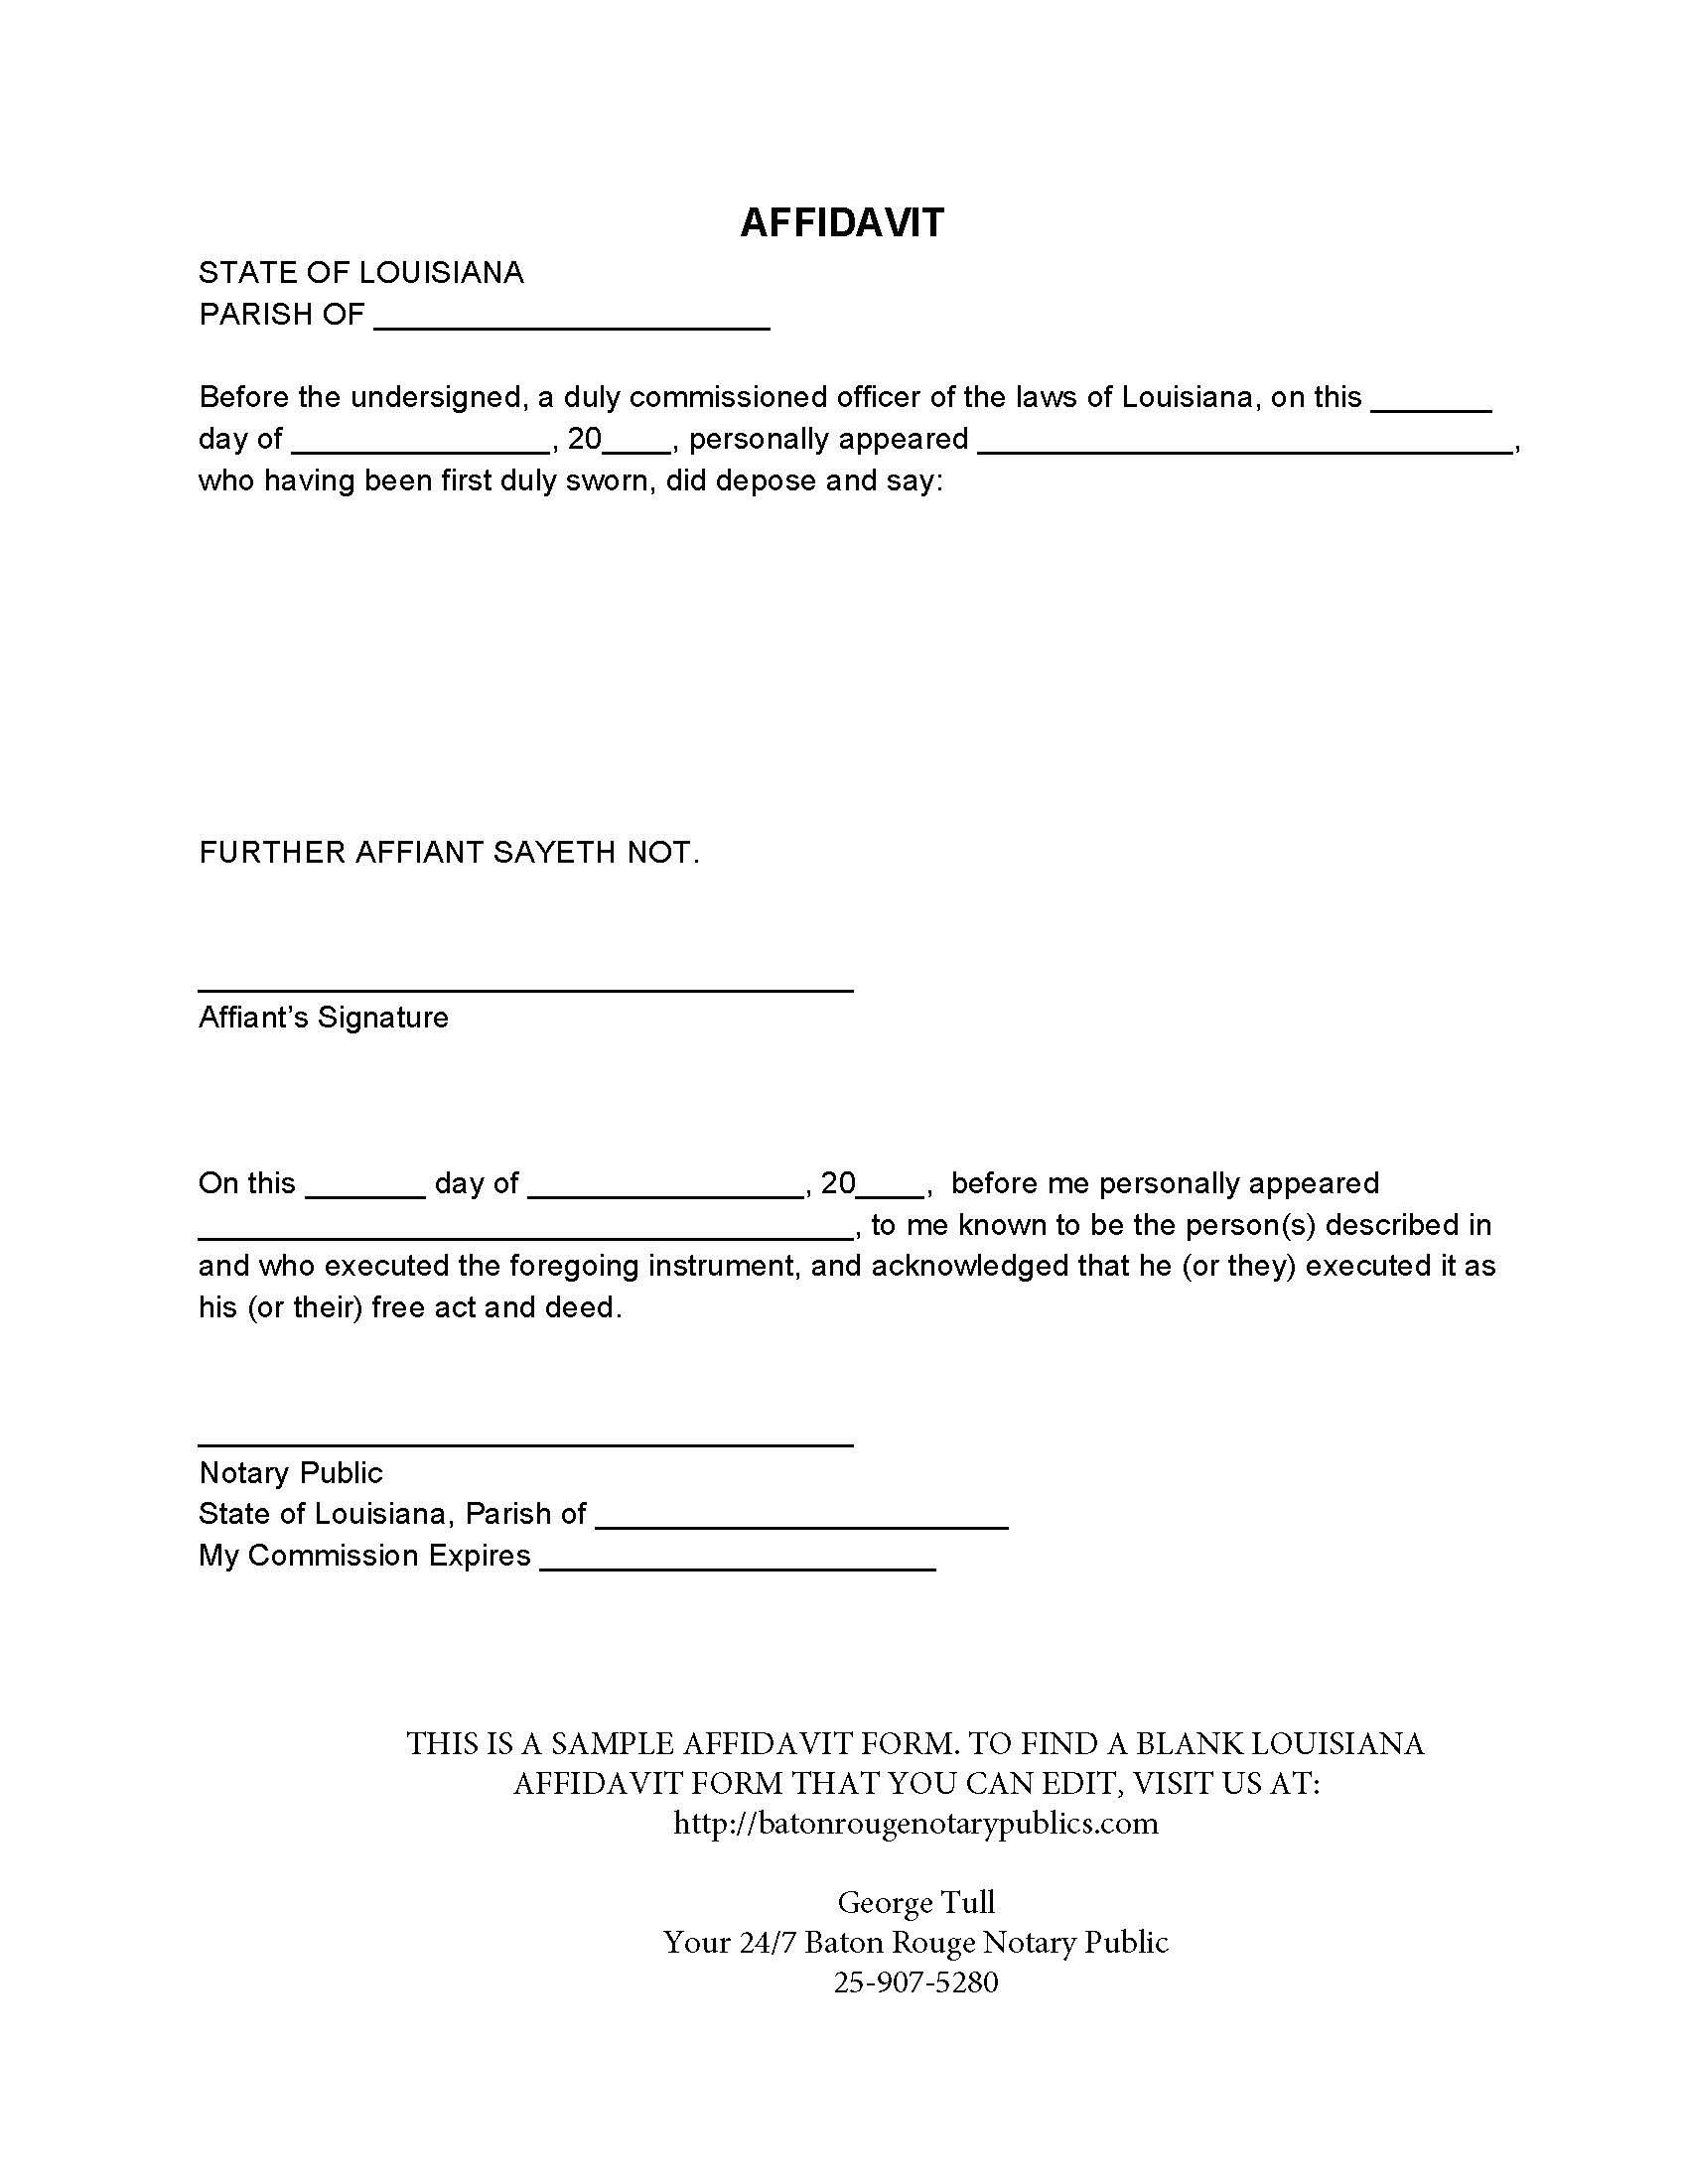 Sample Notary Statements Very Simple Affidavit Form Template Example  Featuring Some Blank .  Affidavit Word Template